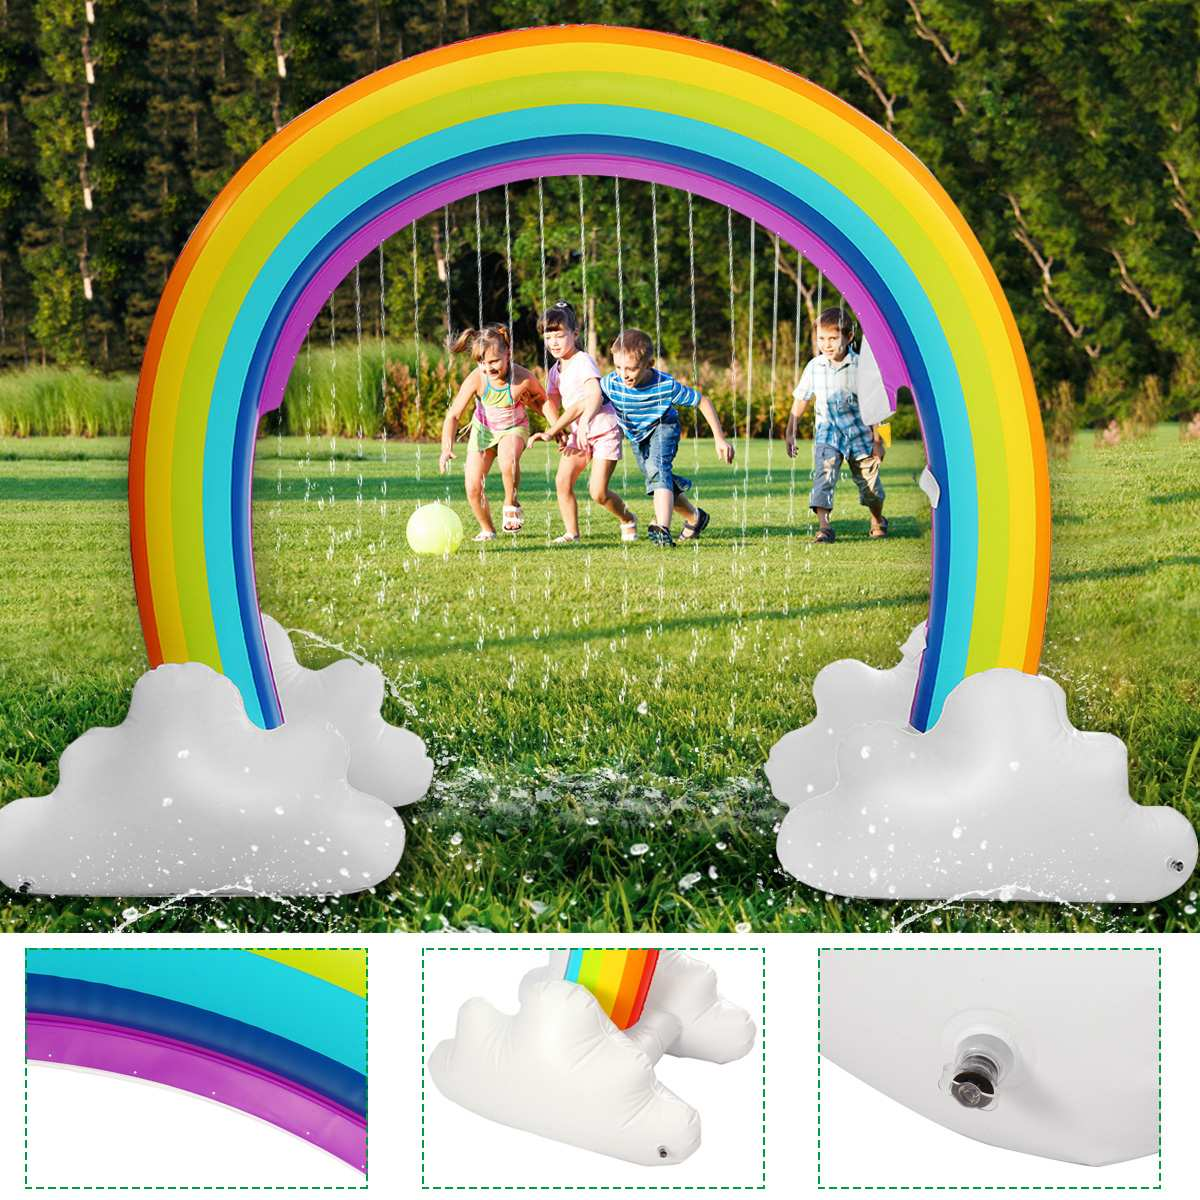 Inflatable Kids Water Sprinkler Rainbow Child Play Fun Garden Beach Outdoor Toy Environmental PVC Material Safe 230x170cm